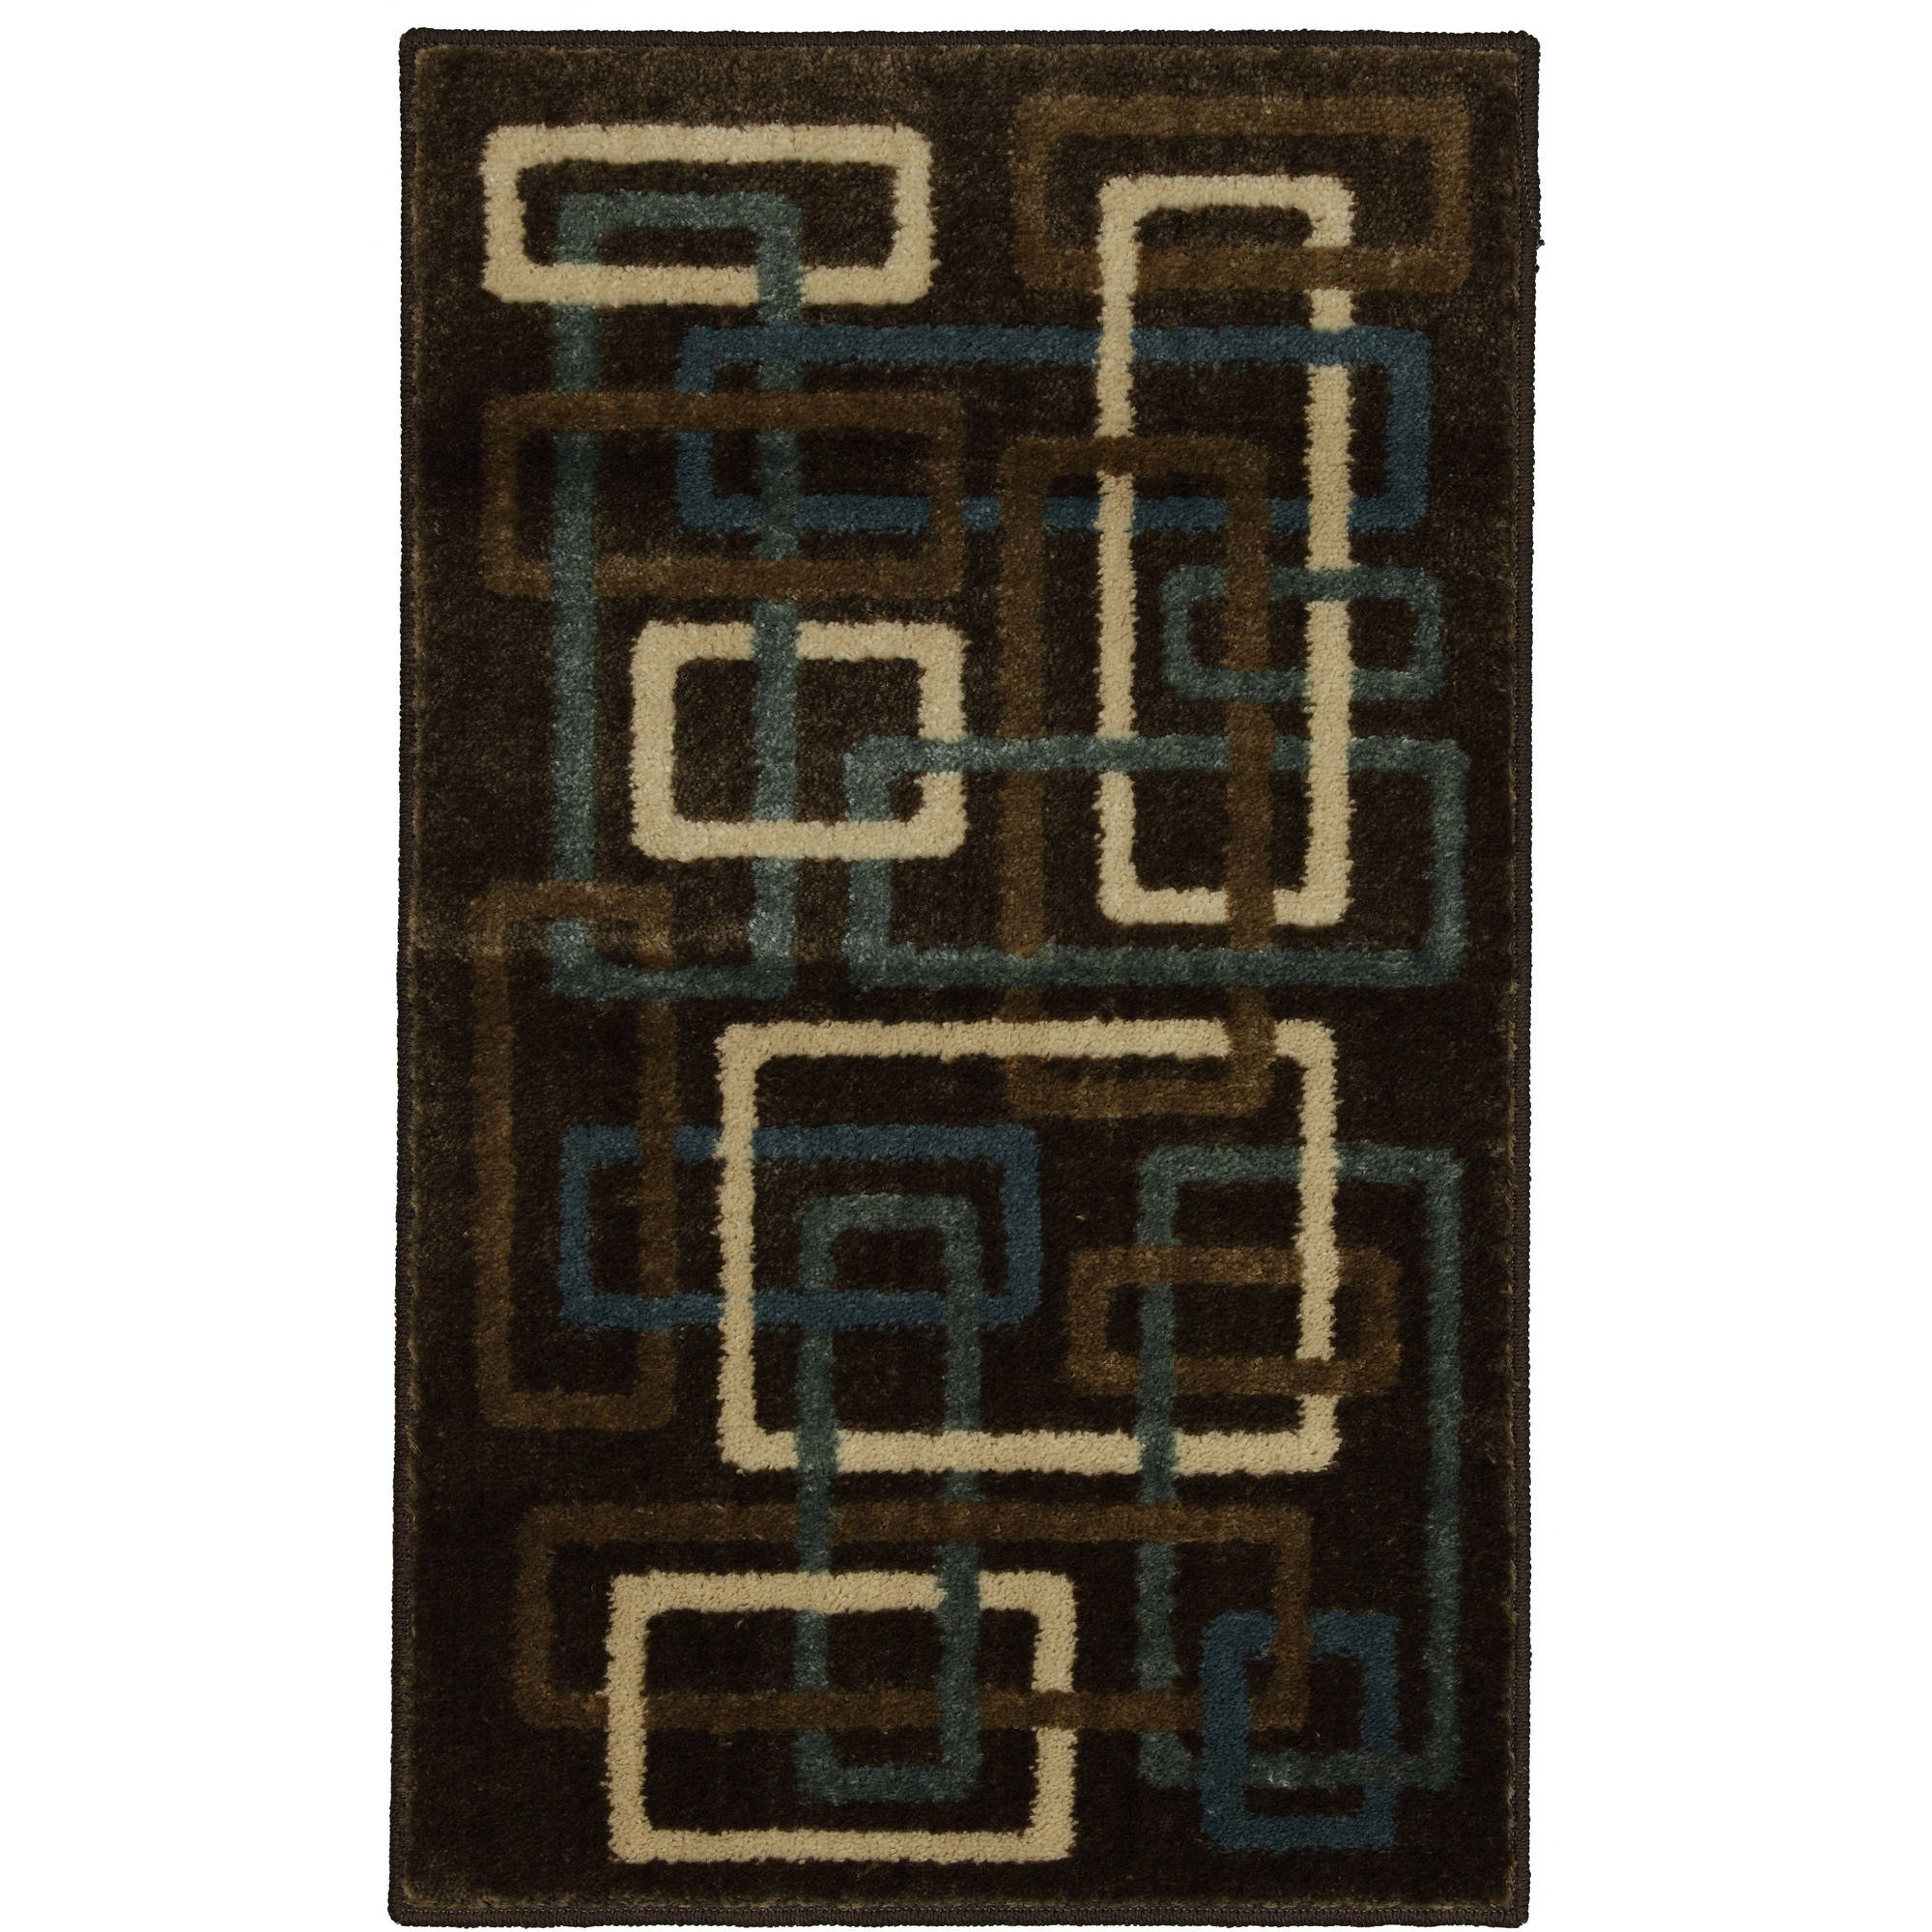 Mainstays Interlaced Woven Olefin Square Rug, Brown